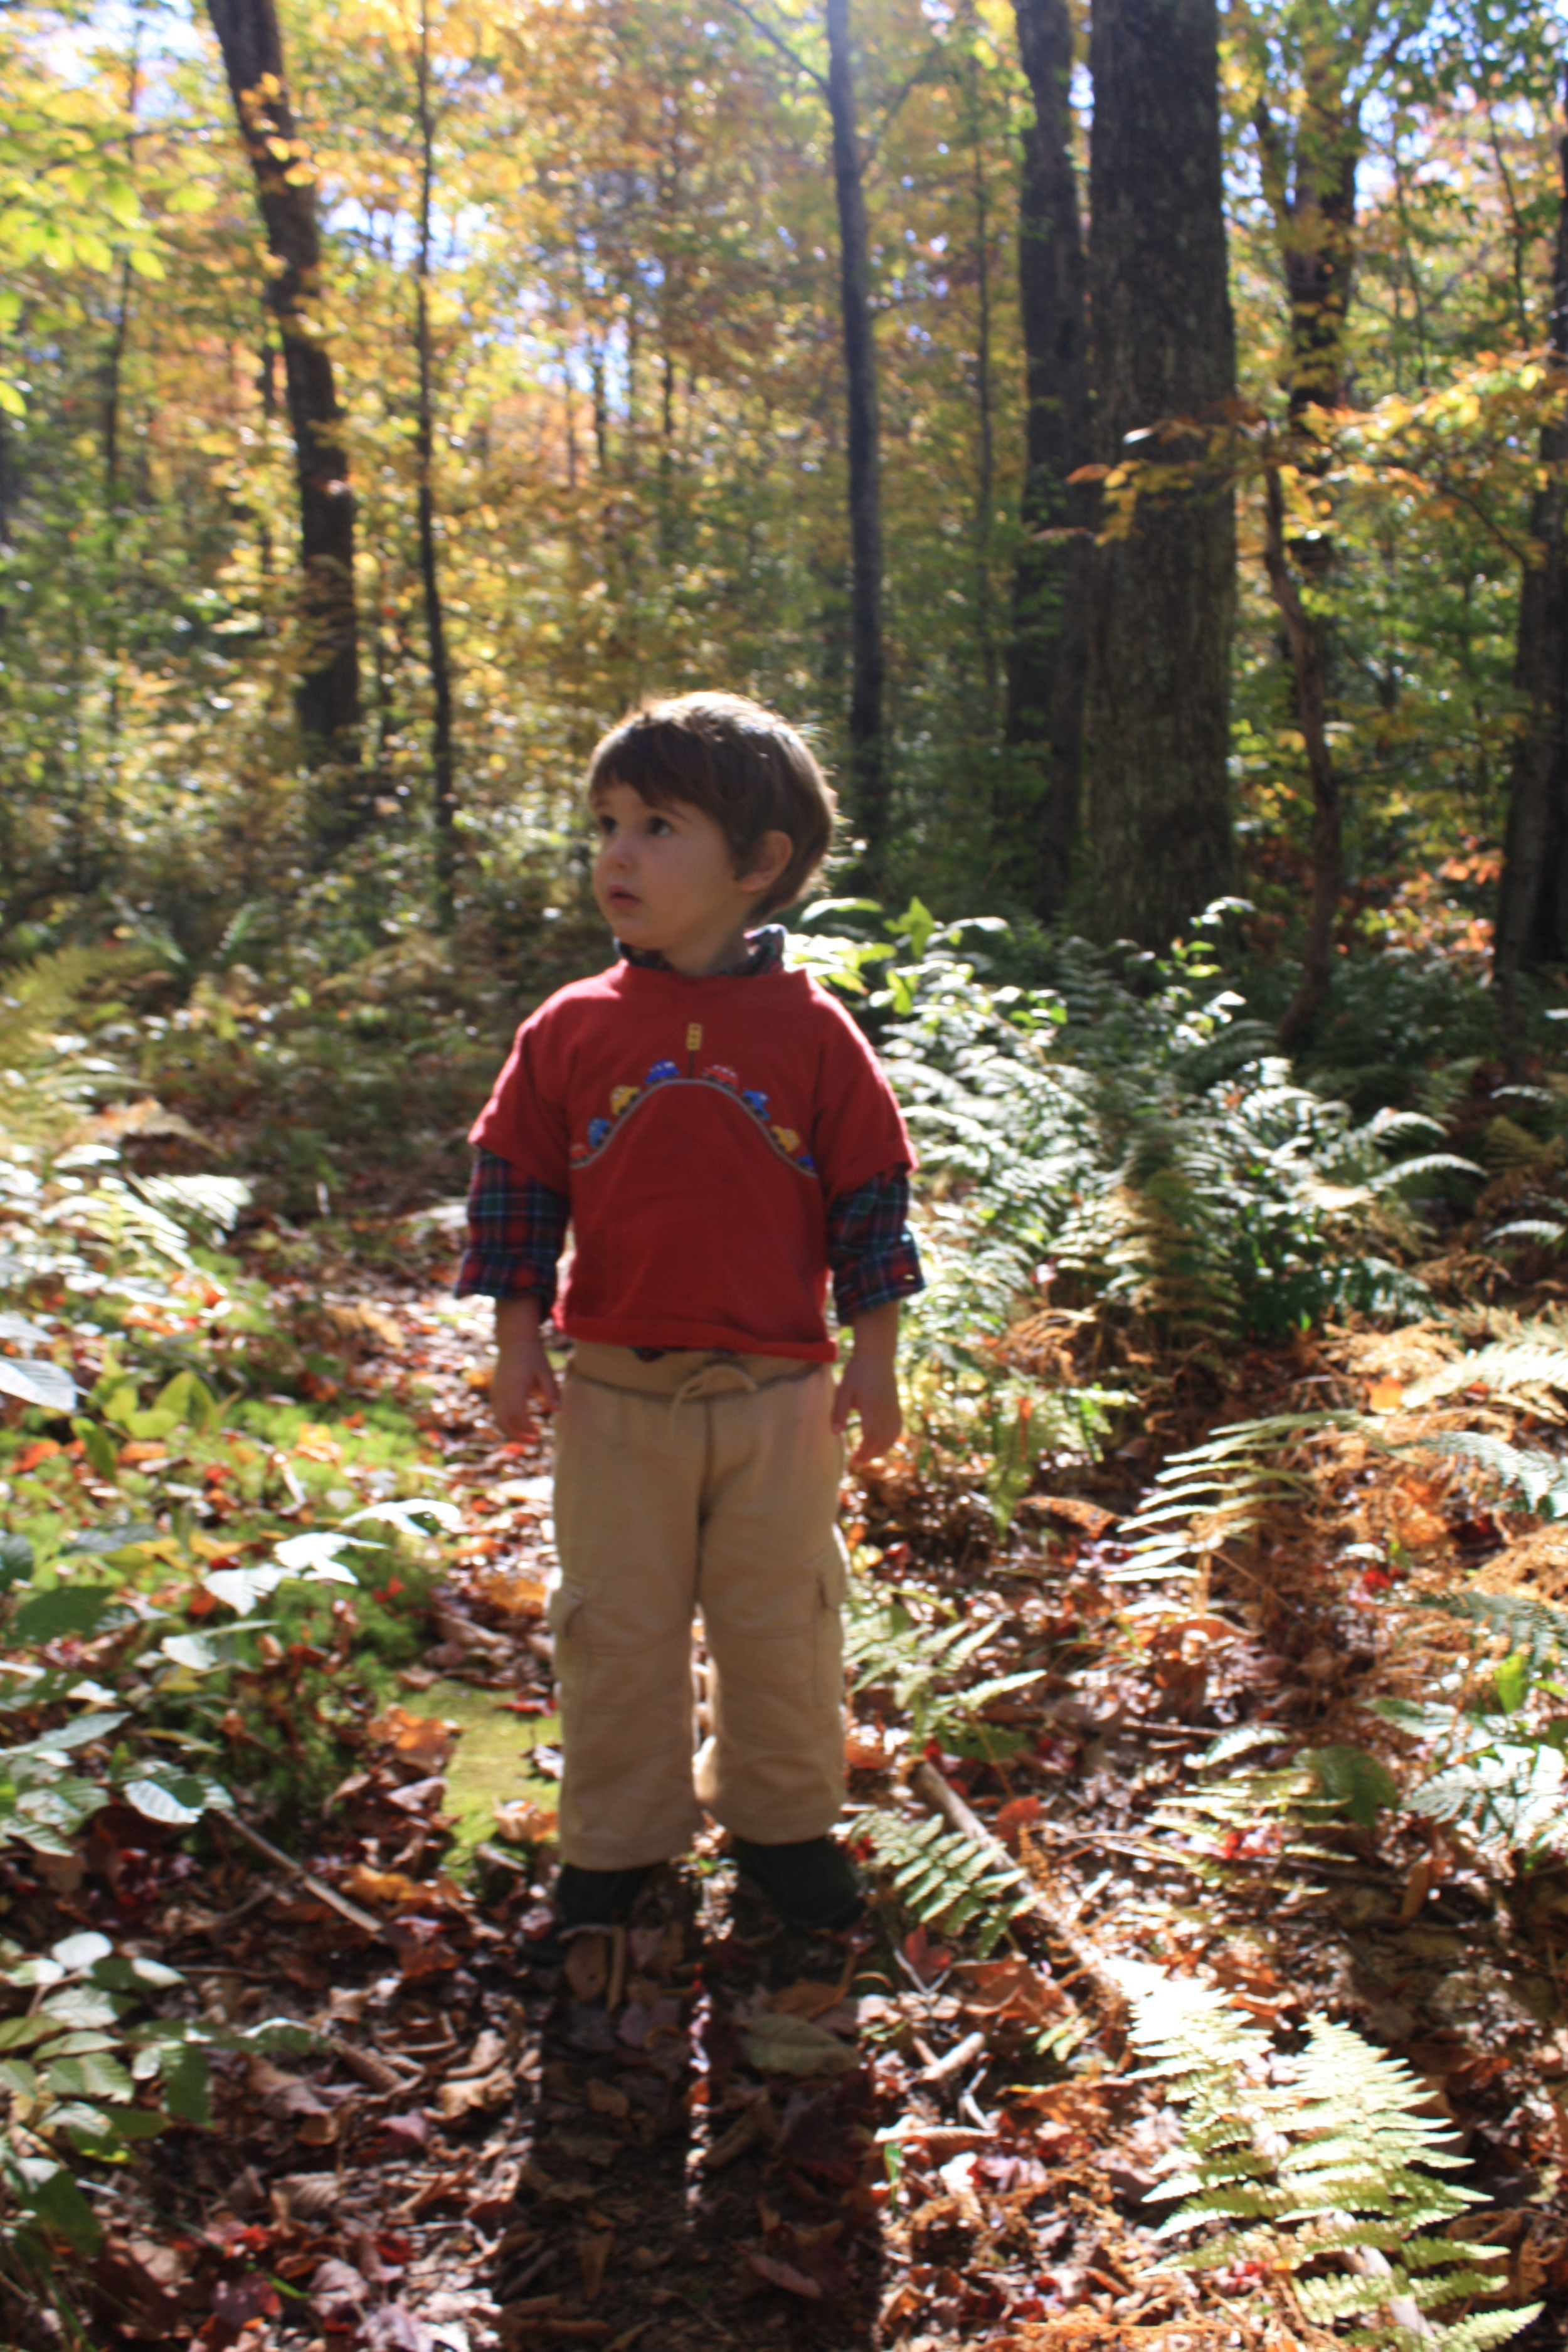 Check out my cute son Clark, aww he was so little then... as well as the understory... lots of dappled sun going on here.